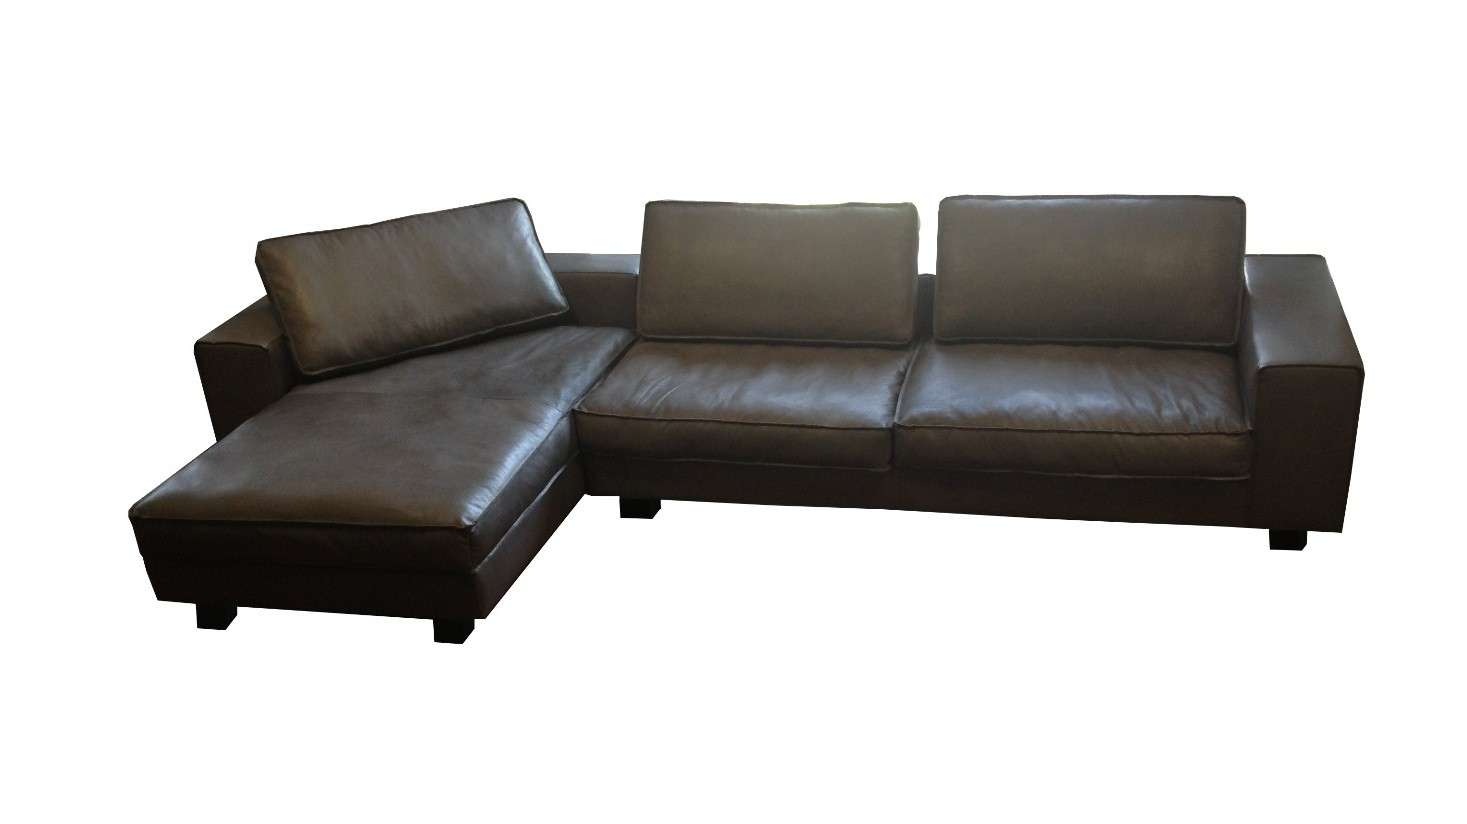 tm collections long beach sofa hochwertige leder couches. Black Bedroom Furniture Sets. Home Design Ideas